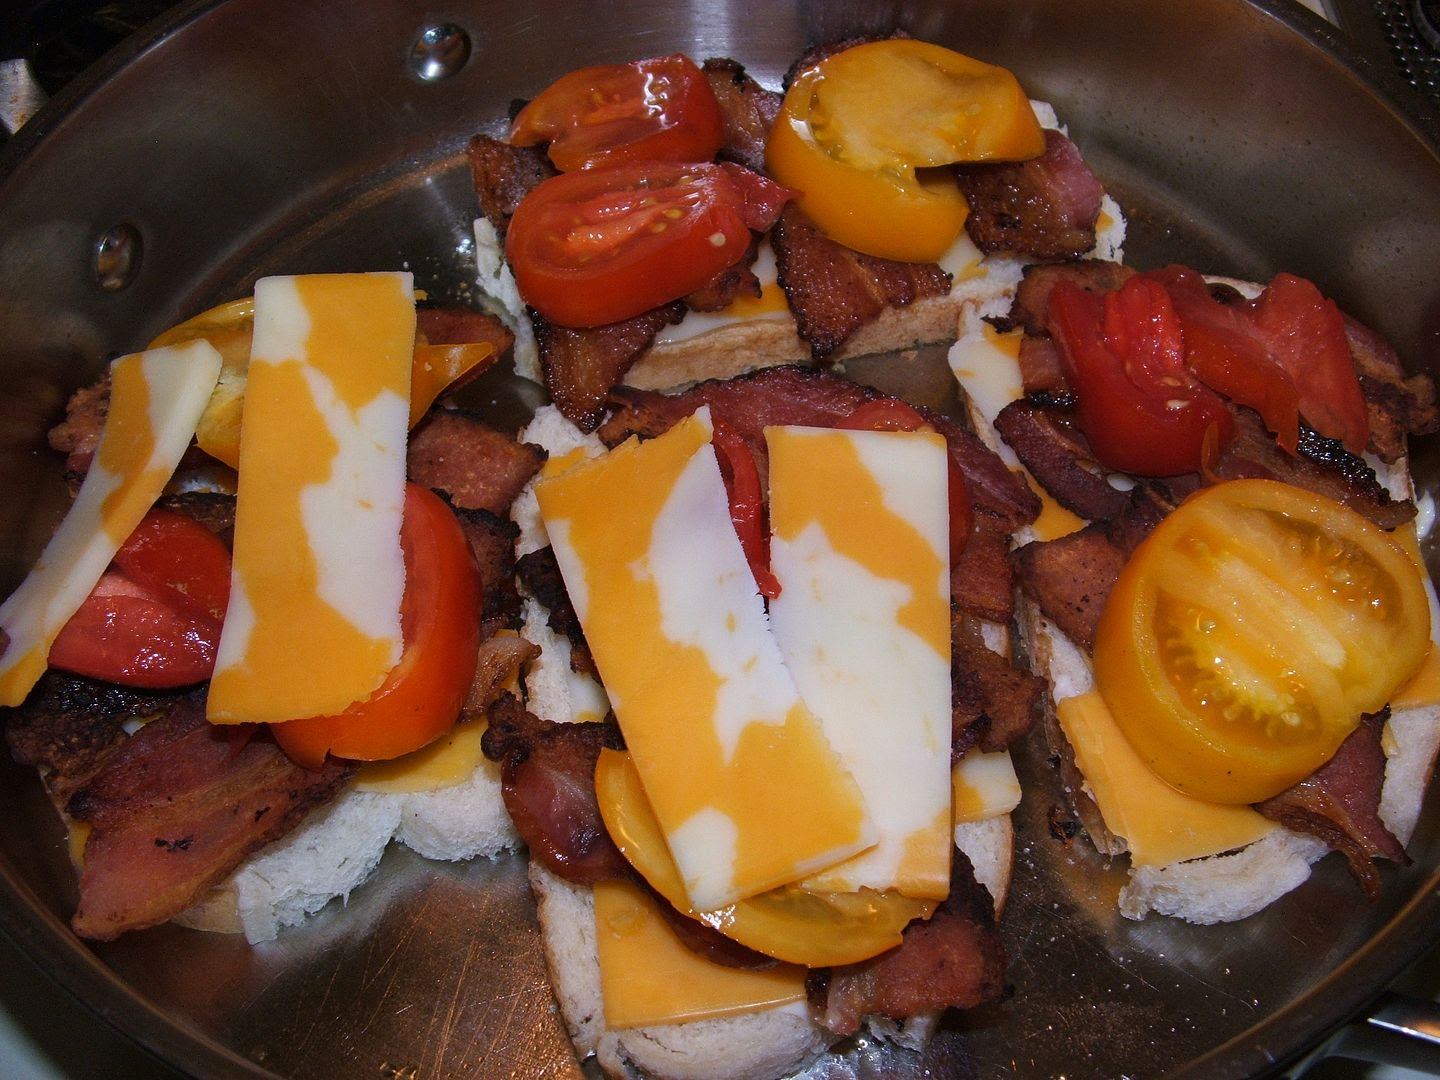 Tomato Bacon Cheese by Angie Ouellette-Tower for godsgrowinggarden.com photo 001_zps3cbcb66f.jpg